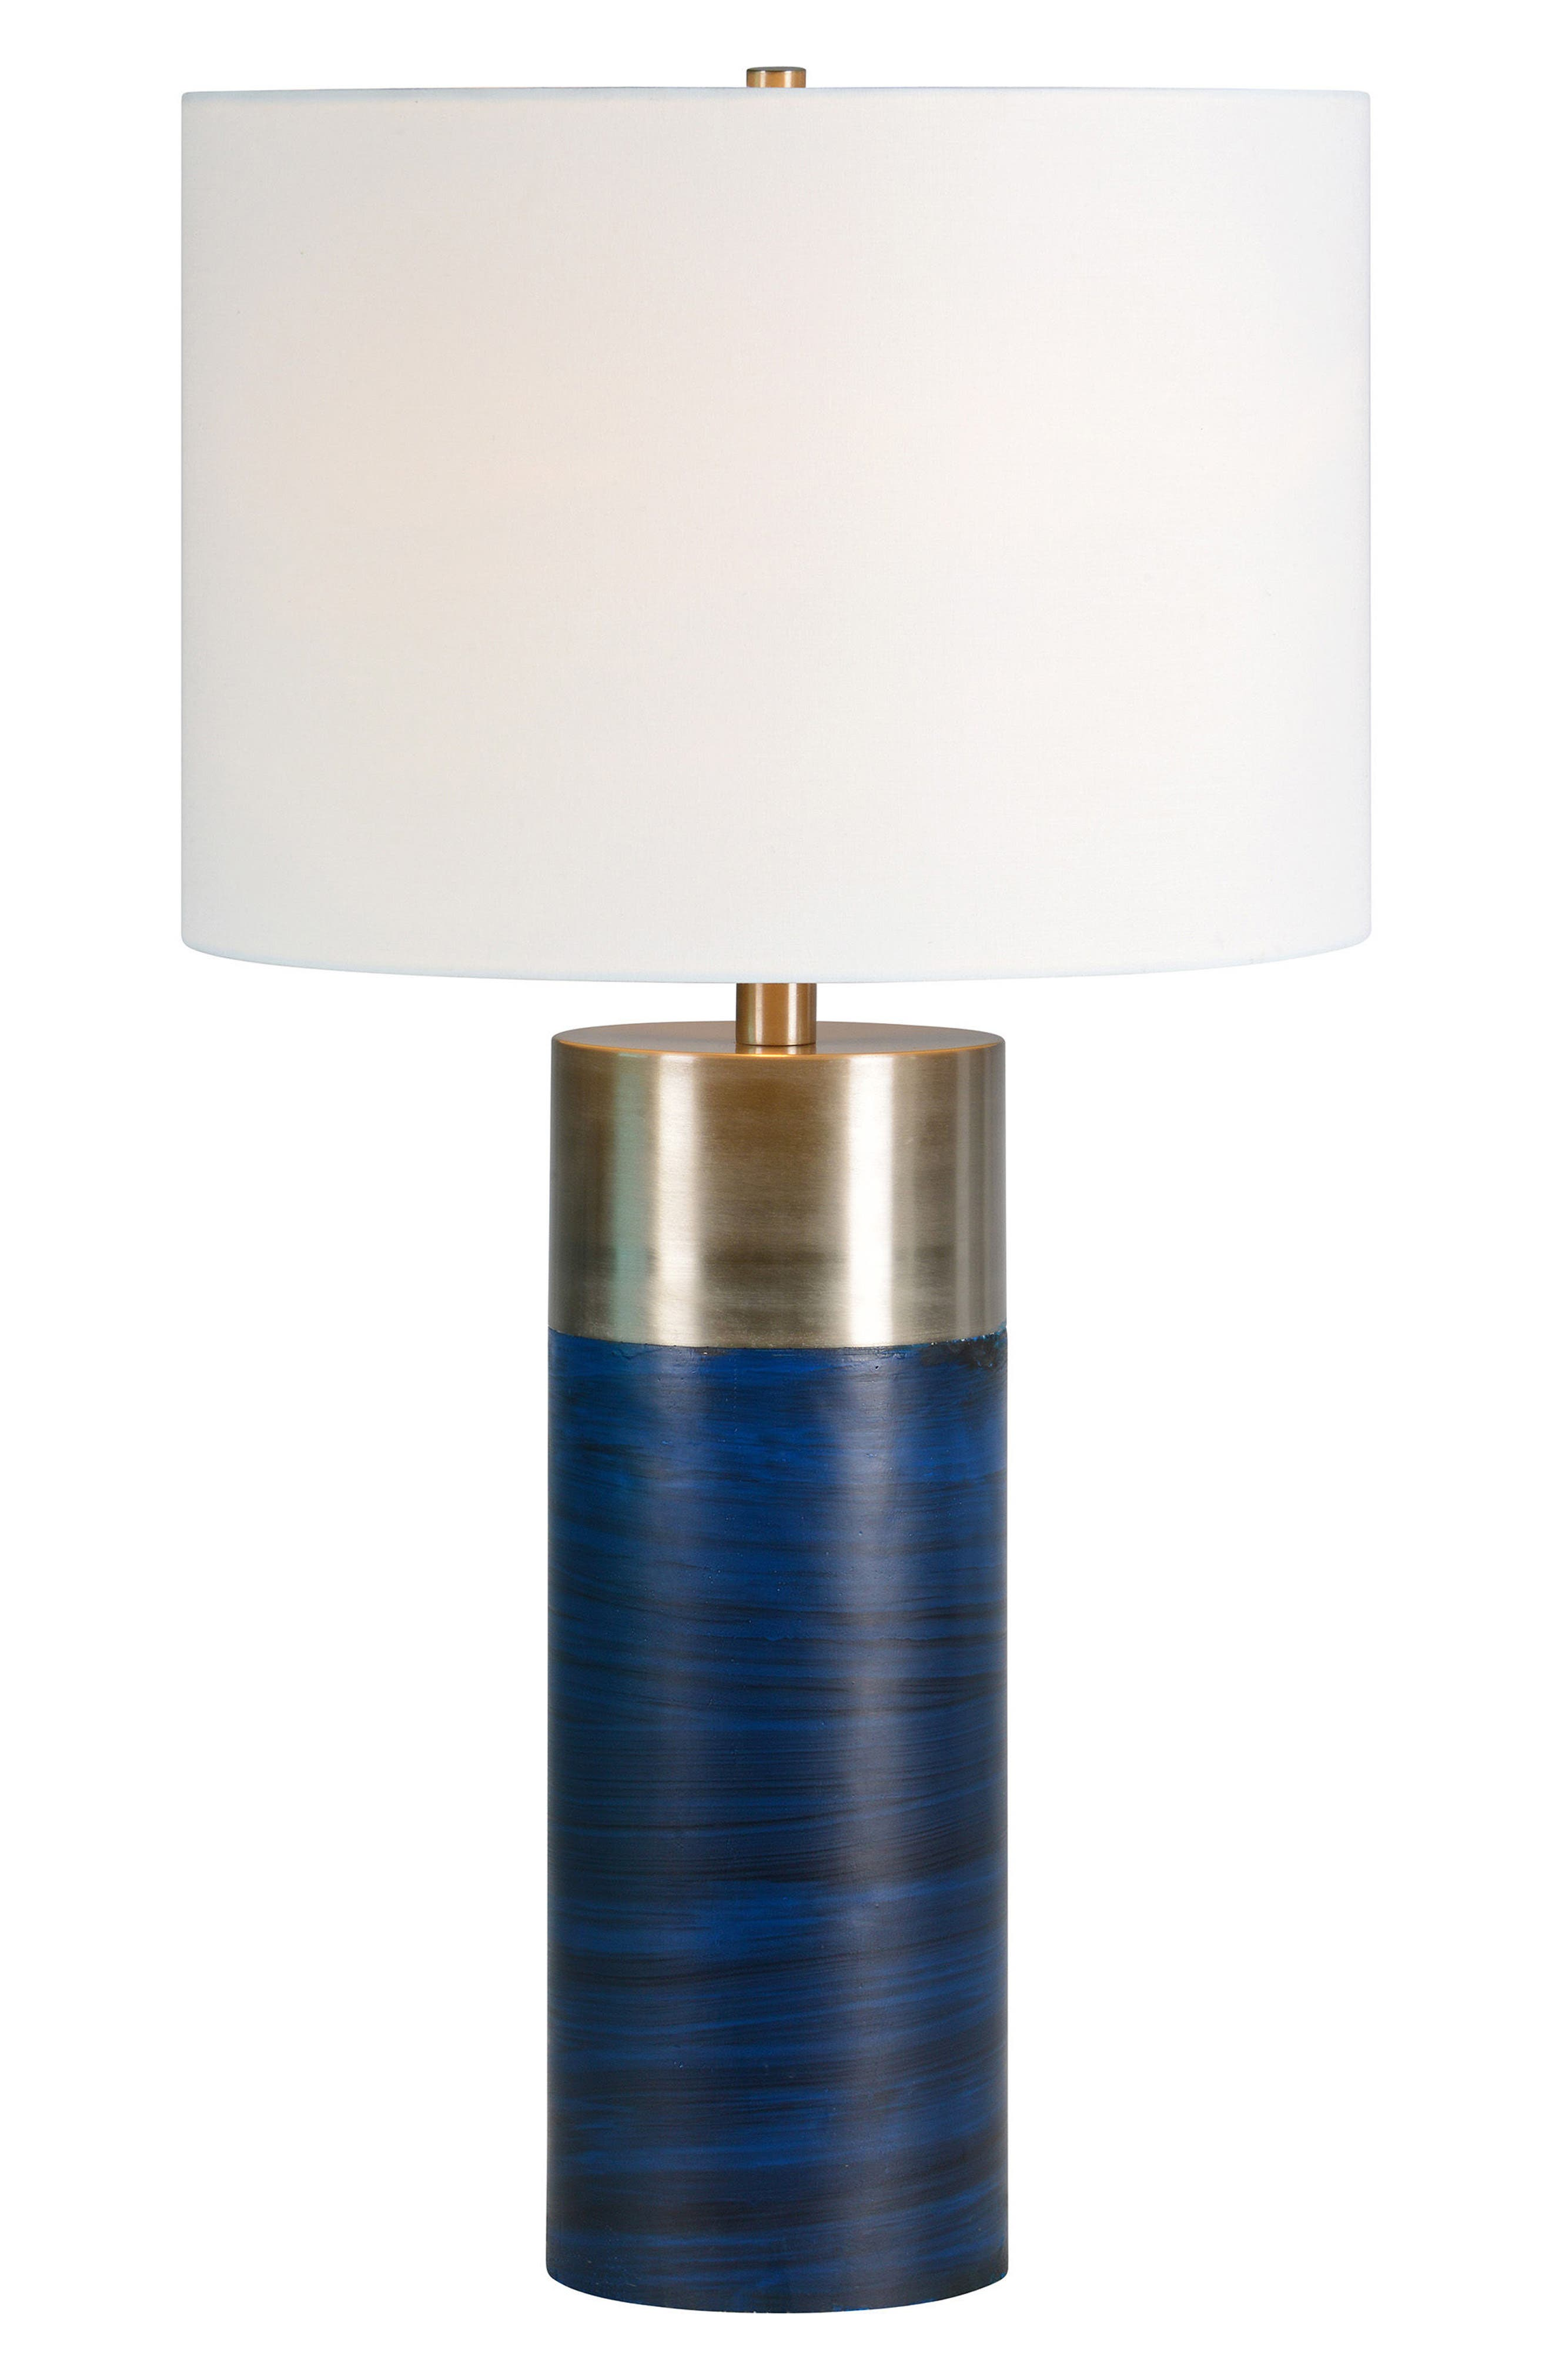 Alternate Image 1 Selected - Renwil Glint Table Lamp